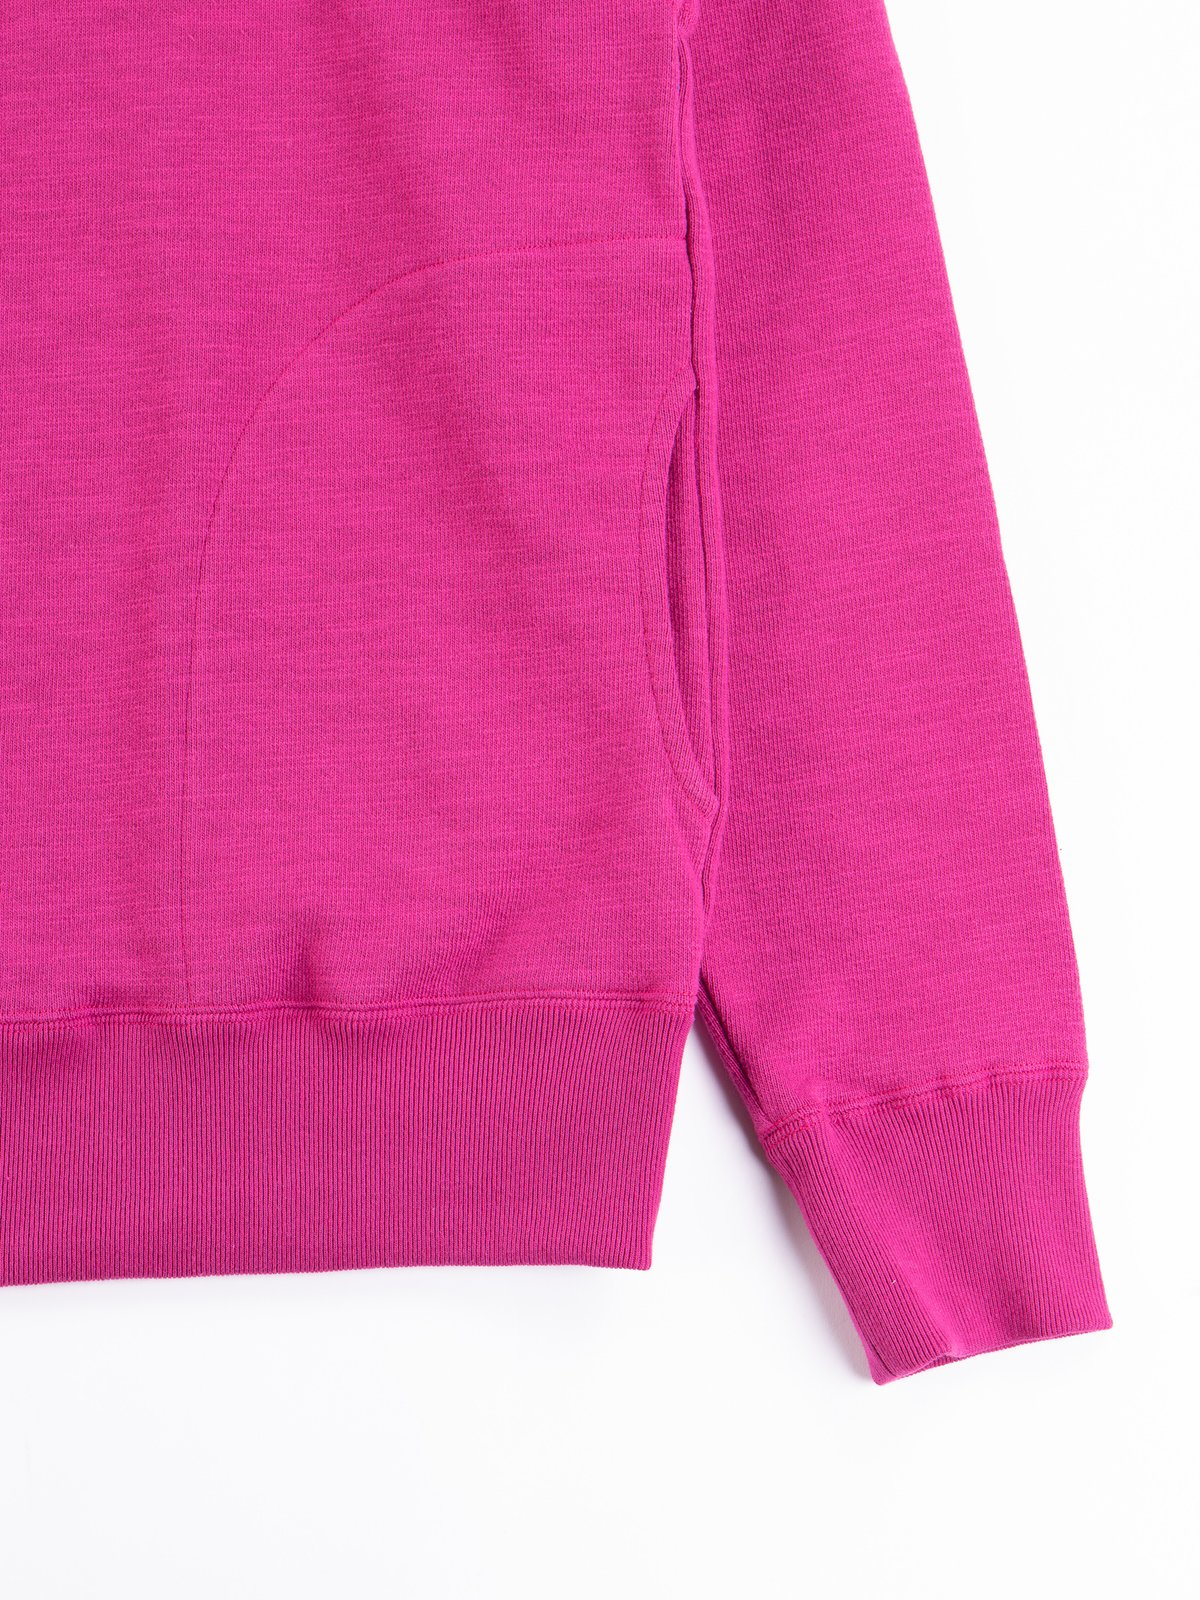 Ash Rose GG Sweat Pullover Parka - Image 4